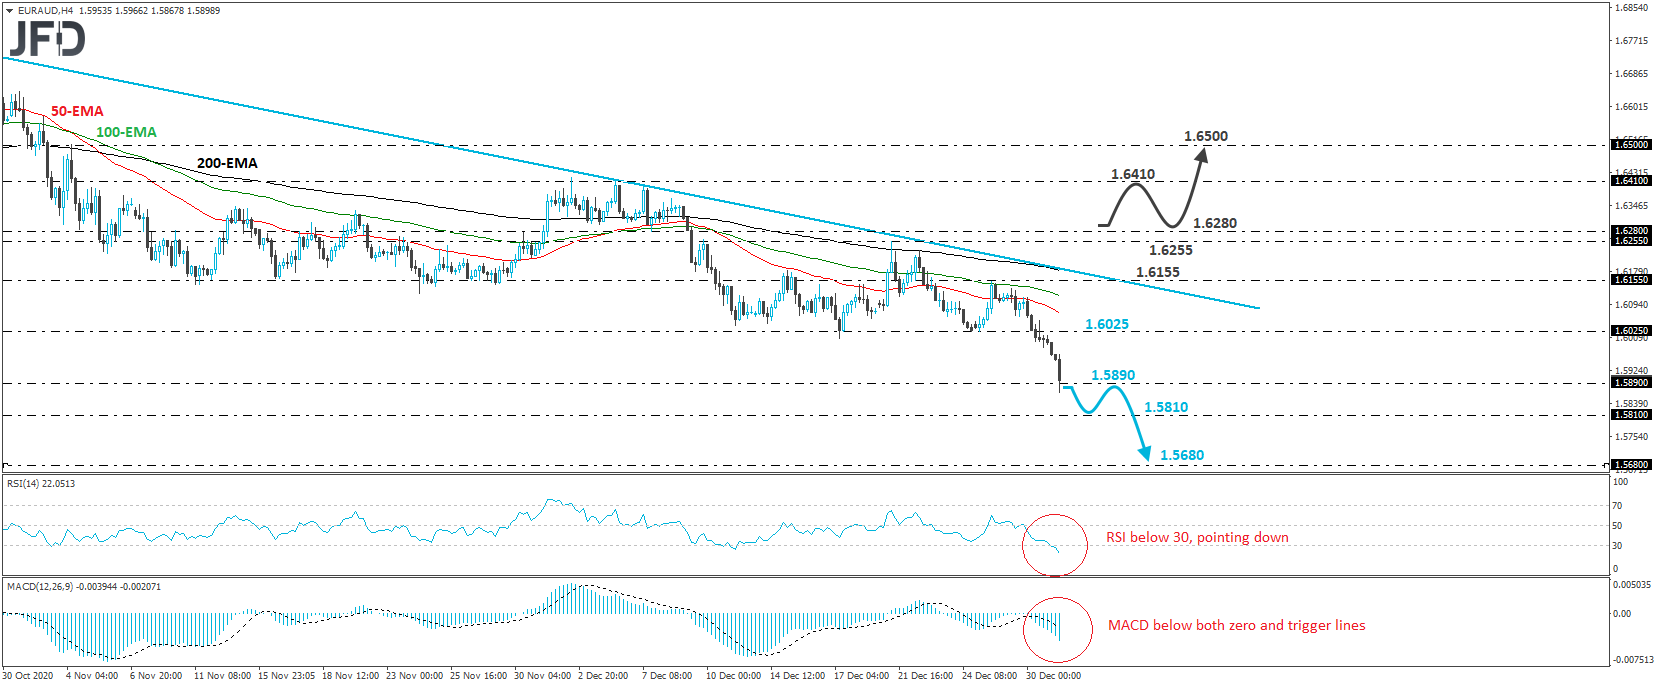 EUR/AUD Tumbles Below Key Support of 1.6025